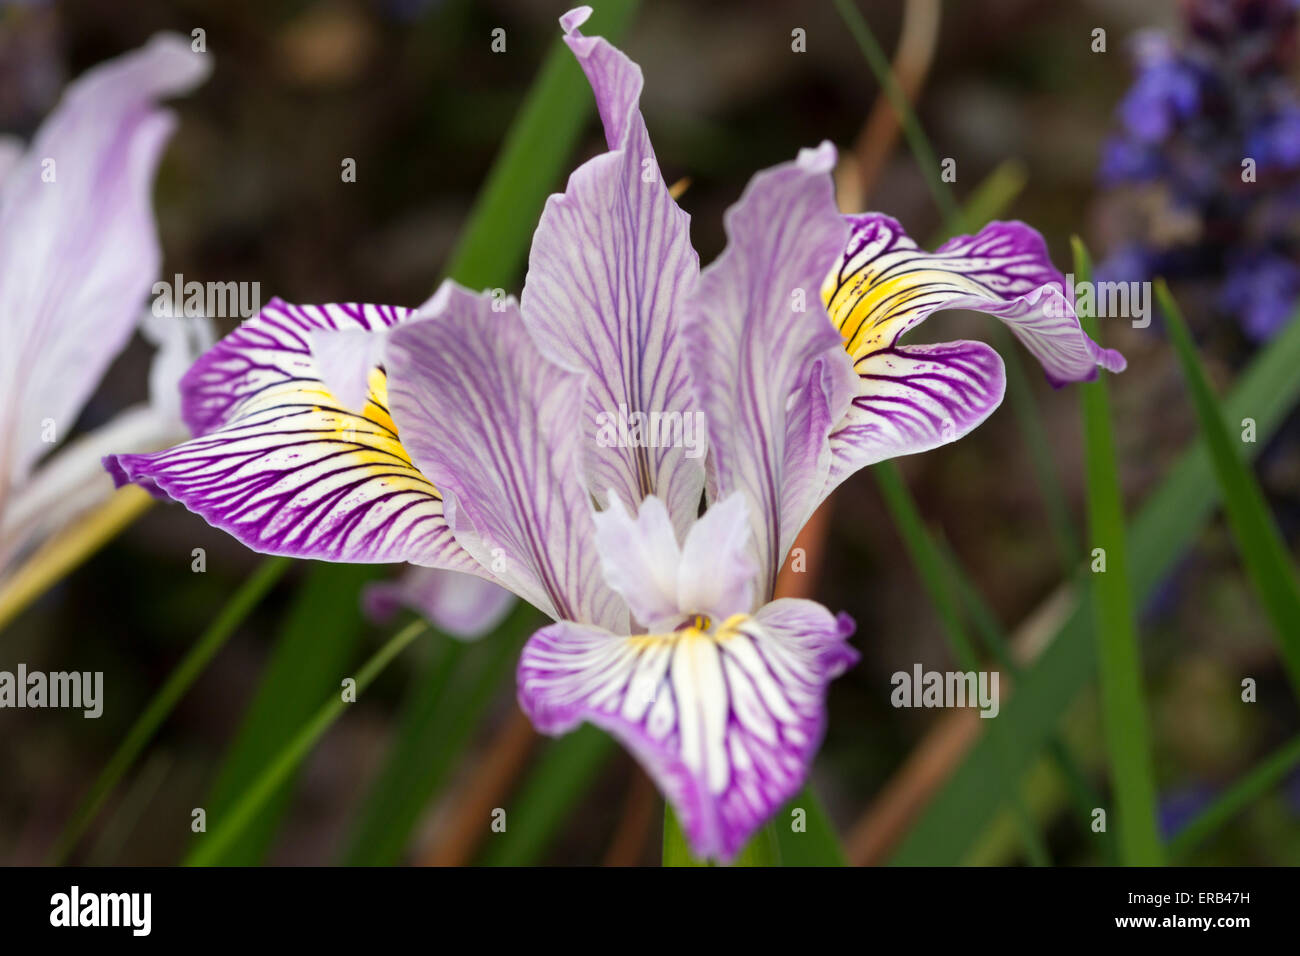 Californian or Pacific Coast hybrid Iris seedling - Stock Image